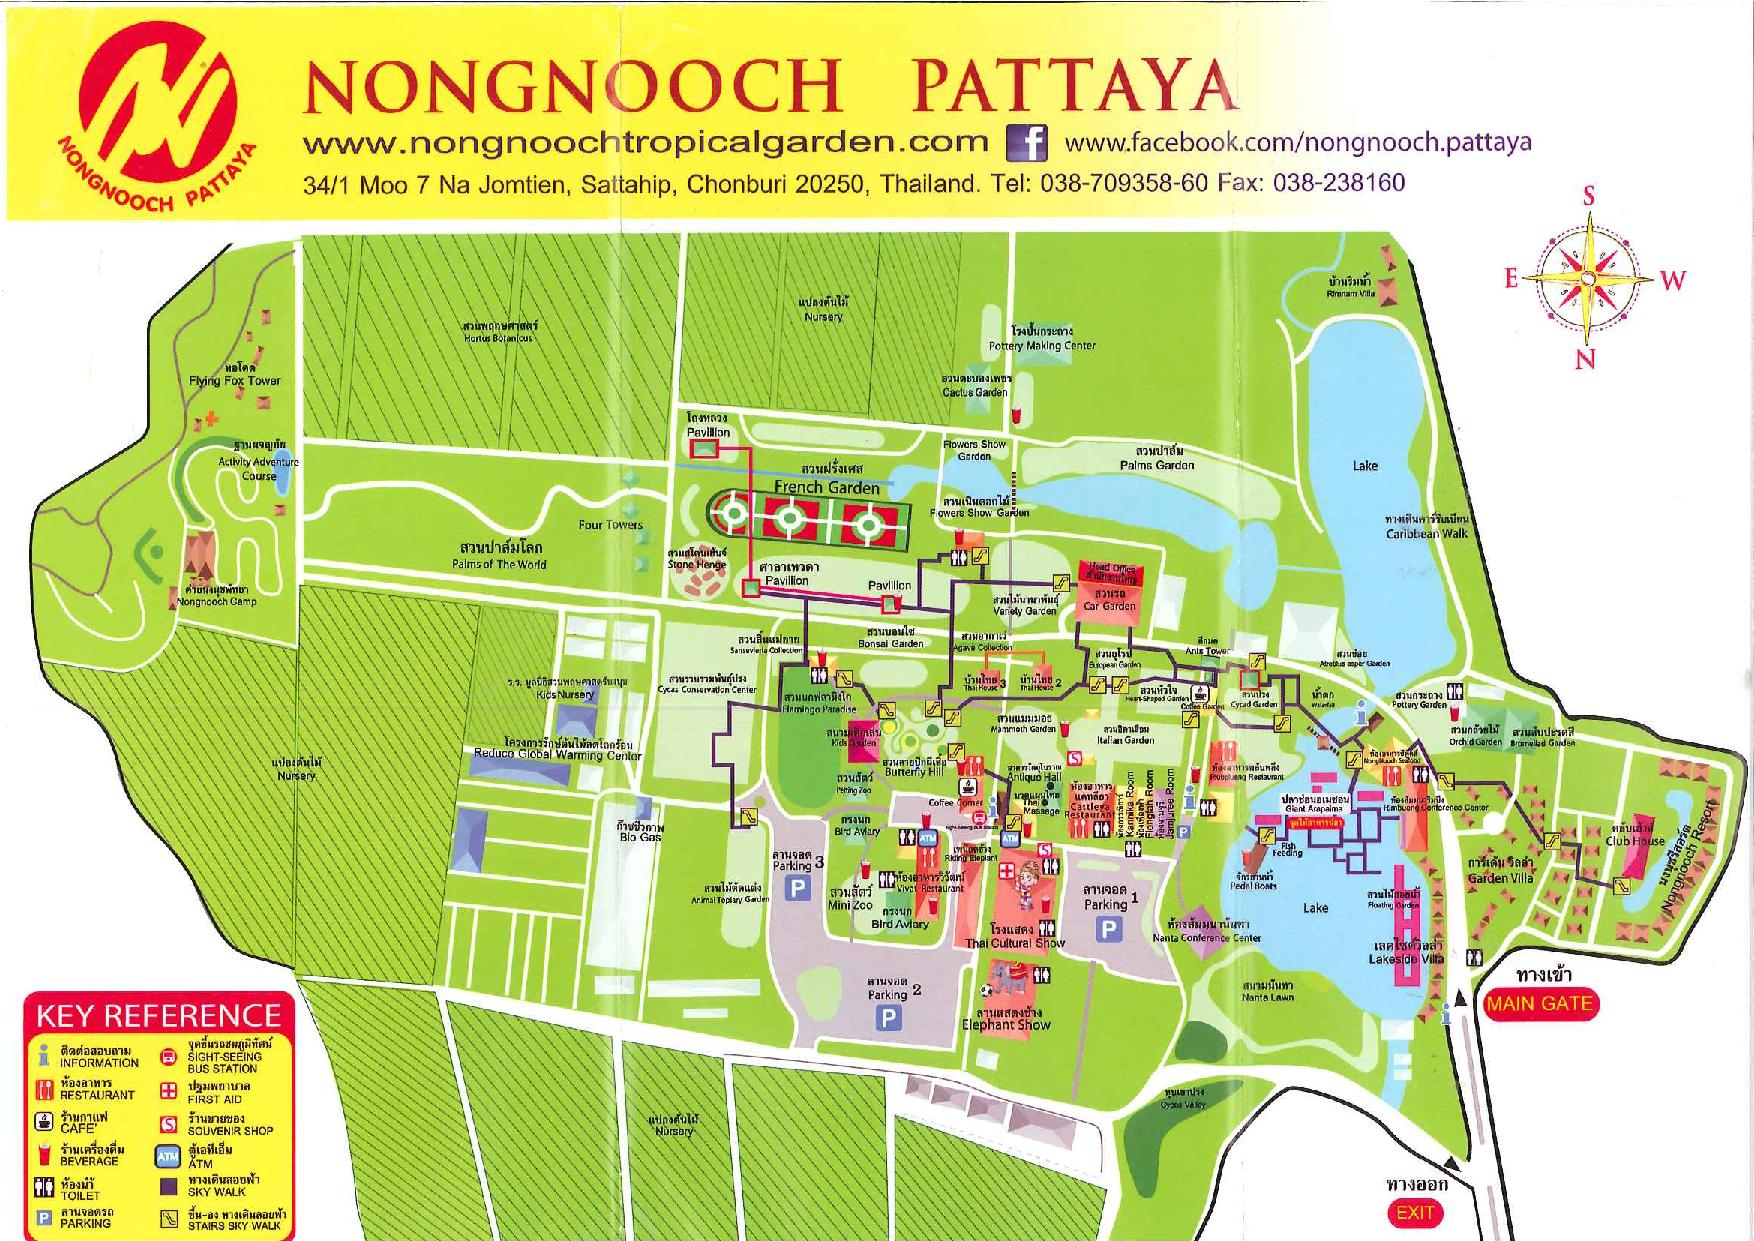 Peta Nong Nooch (sumber: http://www.zoomaps.co.uk/uploads/2/3/8/1/23819198/nayer0-page-001.jpg)